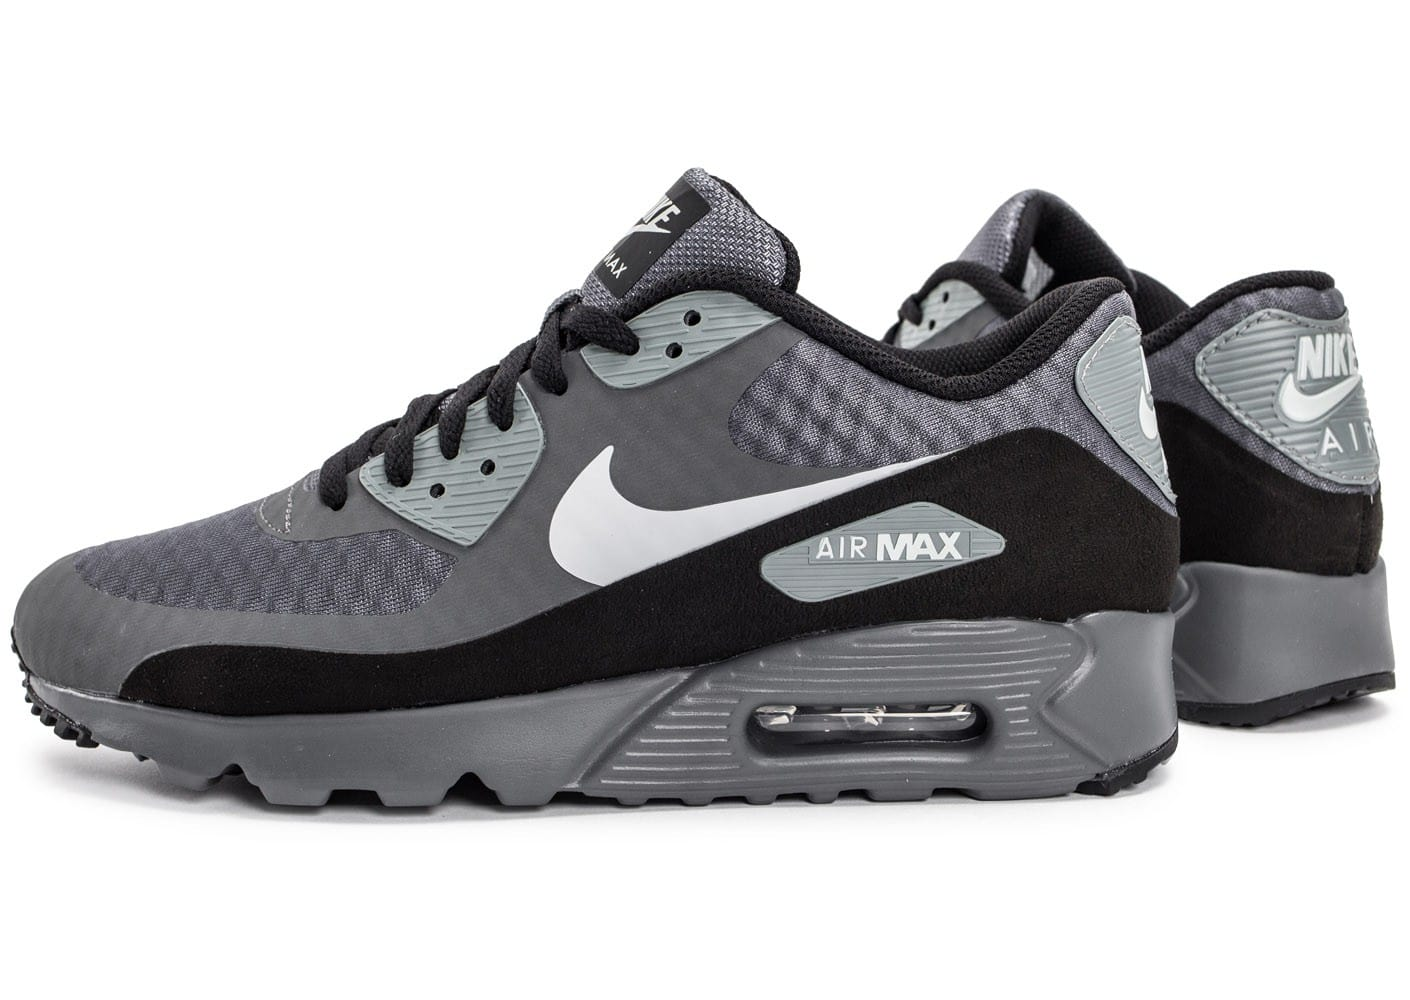 nike air max 90 ultra essential grise et noire chaussures homme chausport. Black Bedroom Furniture Sets. Home Design Ideas